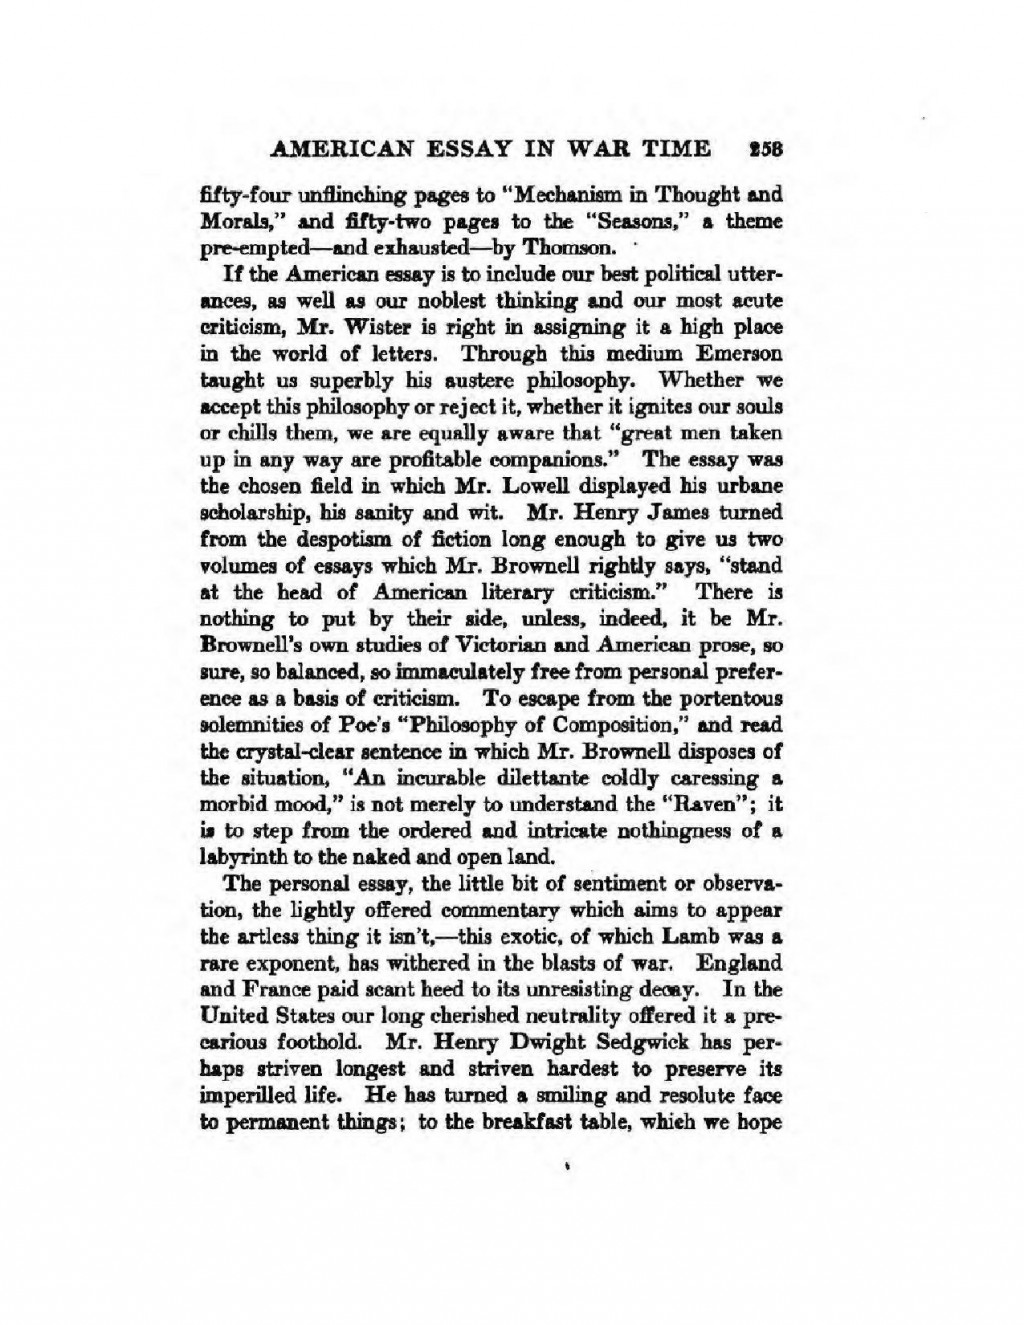 022 American Essay Example Page5 1275px The In War Time2c Agnes Repplier2c 1918 Striking Format Literature Topics Identity Titles Large